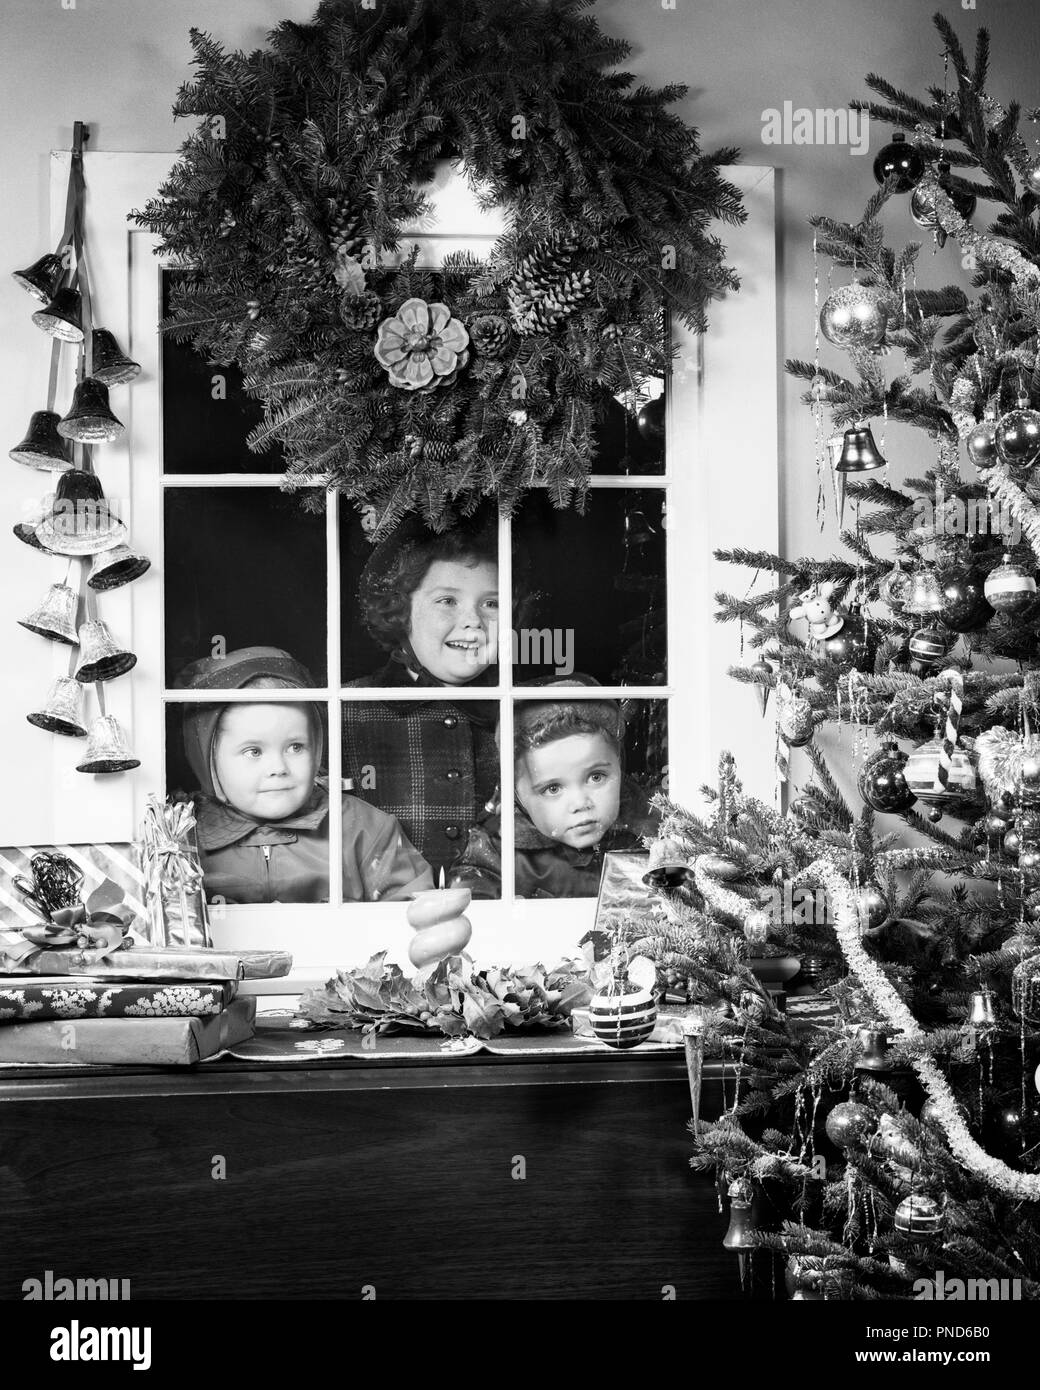 1950s CHILDREN ONE GIRL TWO BOYS LOOKING THROUGH WINDOW AT CHRISTMAS TREE WITH WRAPPED GIFTS WREATH HANGING ABOVE - x325 HAR001 HARS NOSTALGIA BROTHER OLD FASHION SISTER 1 THROUGH JUVENILE FACIAL WREATH PLEASED JOY LIFESTYLE CELEBRATION FEMALES BROTHERS STUDIO SHOT HOME LIFE MALES SIBLINGS GIFTS SISTERS EXPRESSIONS B&W DREAMS HAPPINESS HEAD AND SHOULDERS CHEERFUL MERRY EXCITEMENT AT ANTICIPATION SIBLING SMILES DECEMBER CONCEPTUAL DECEMBER 25 JOYFUL VISITING JOYOUS JUVENILES TOGETHERNESS BLACK AND WHITE CAUCASIAN ETHNICITY HAR001 OLD FASHIONED - Stock Image